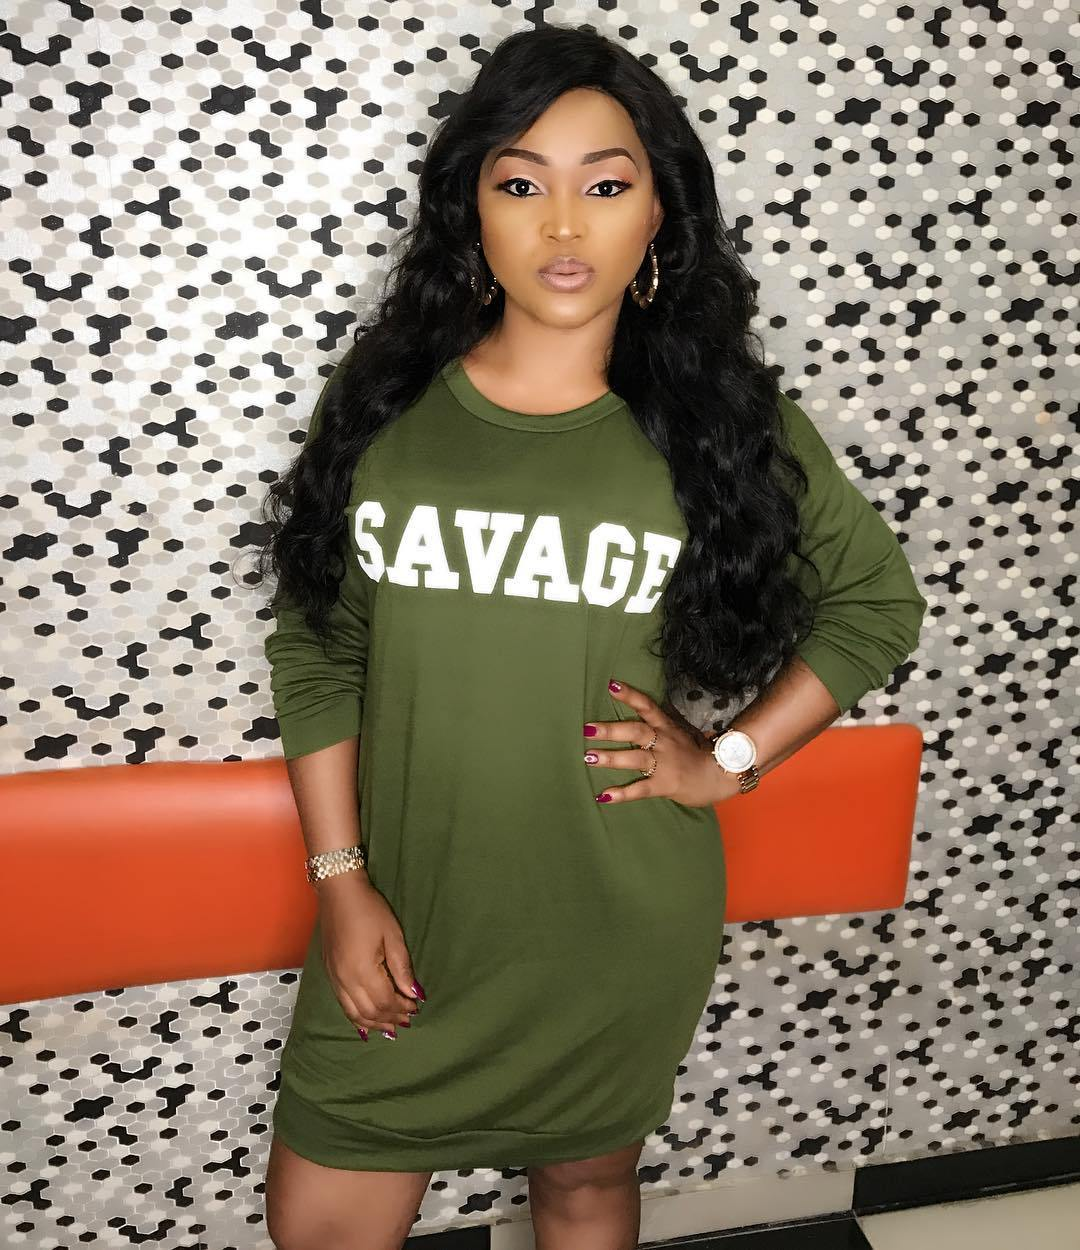 Mercy Aigbe phone number, whatsapp contact, house address, instagram, twitter, email etc.